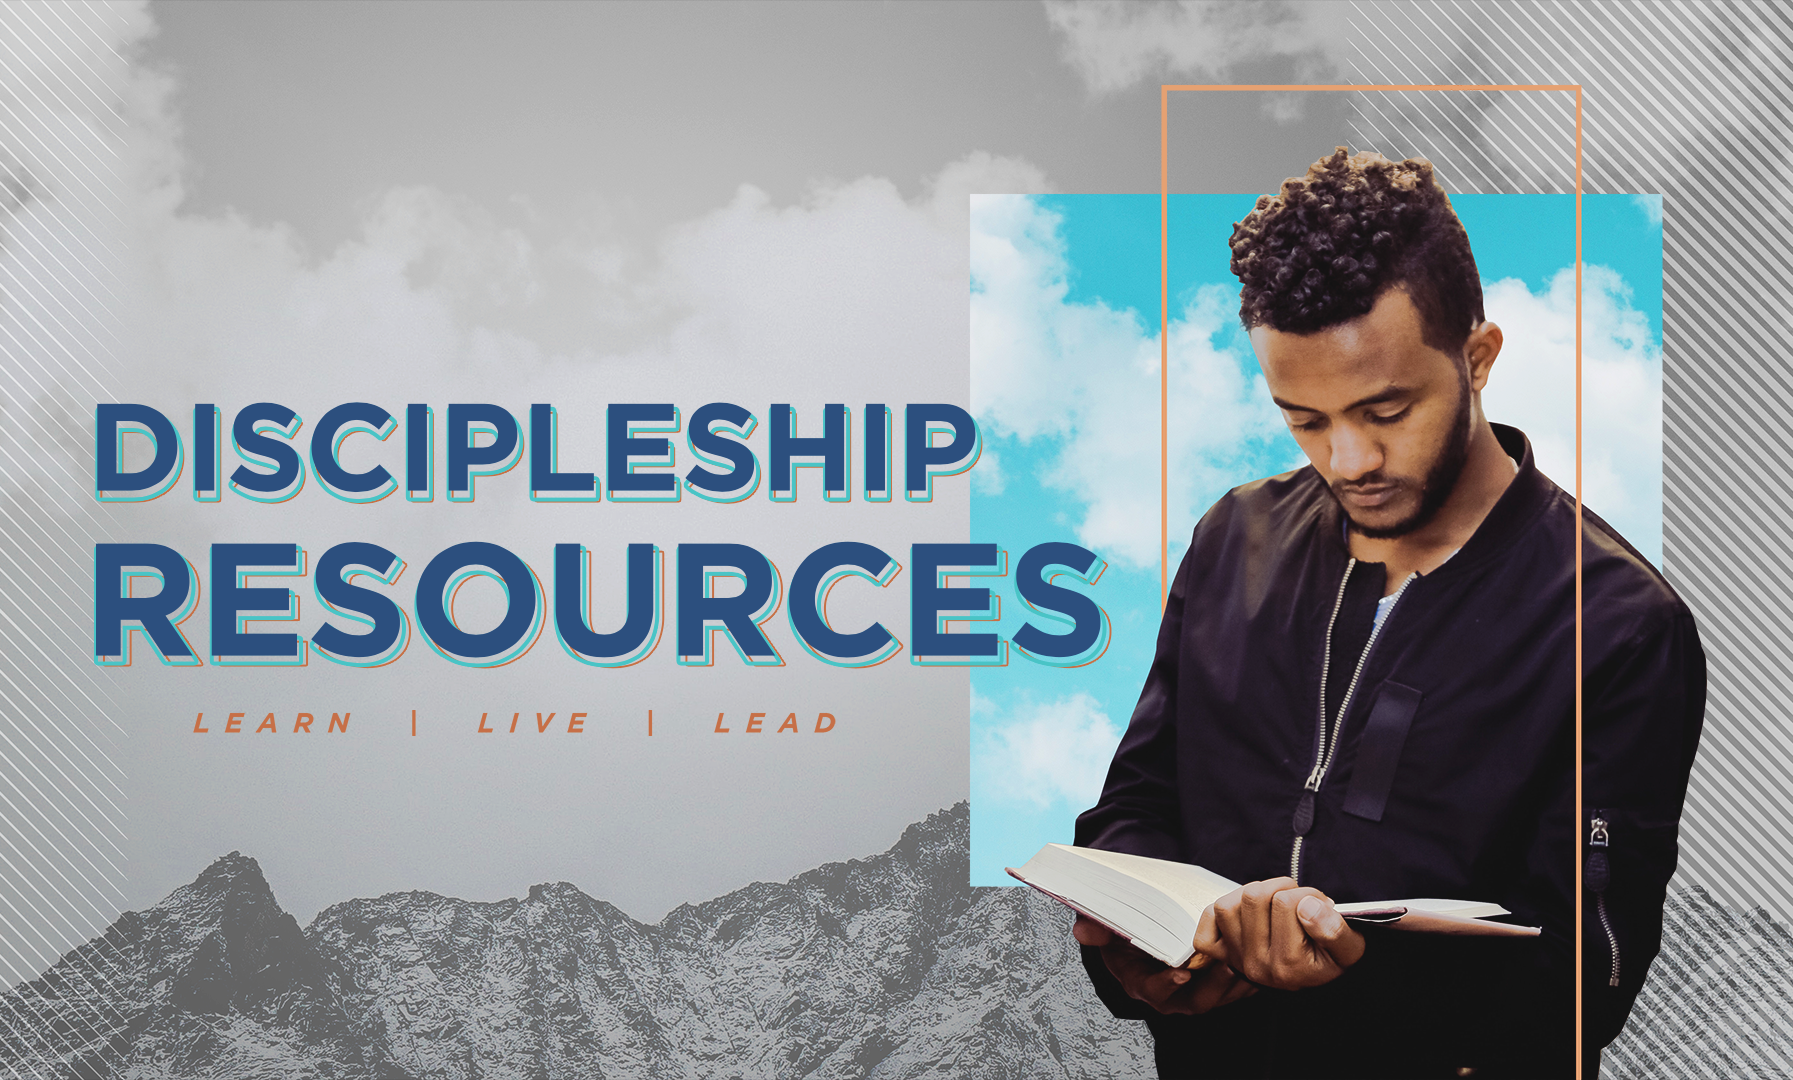 Our National Men's Ministry offers dozens of free Men's Discipleship Resources. Register for free to gain access by clicking on the image.